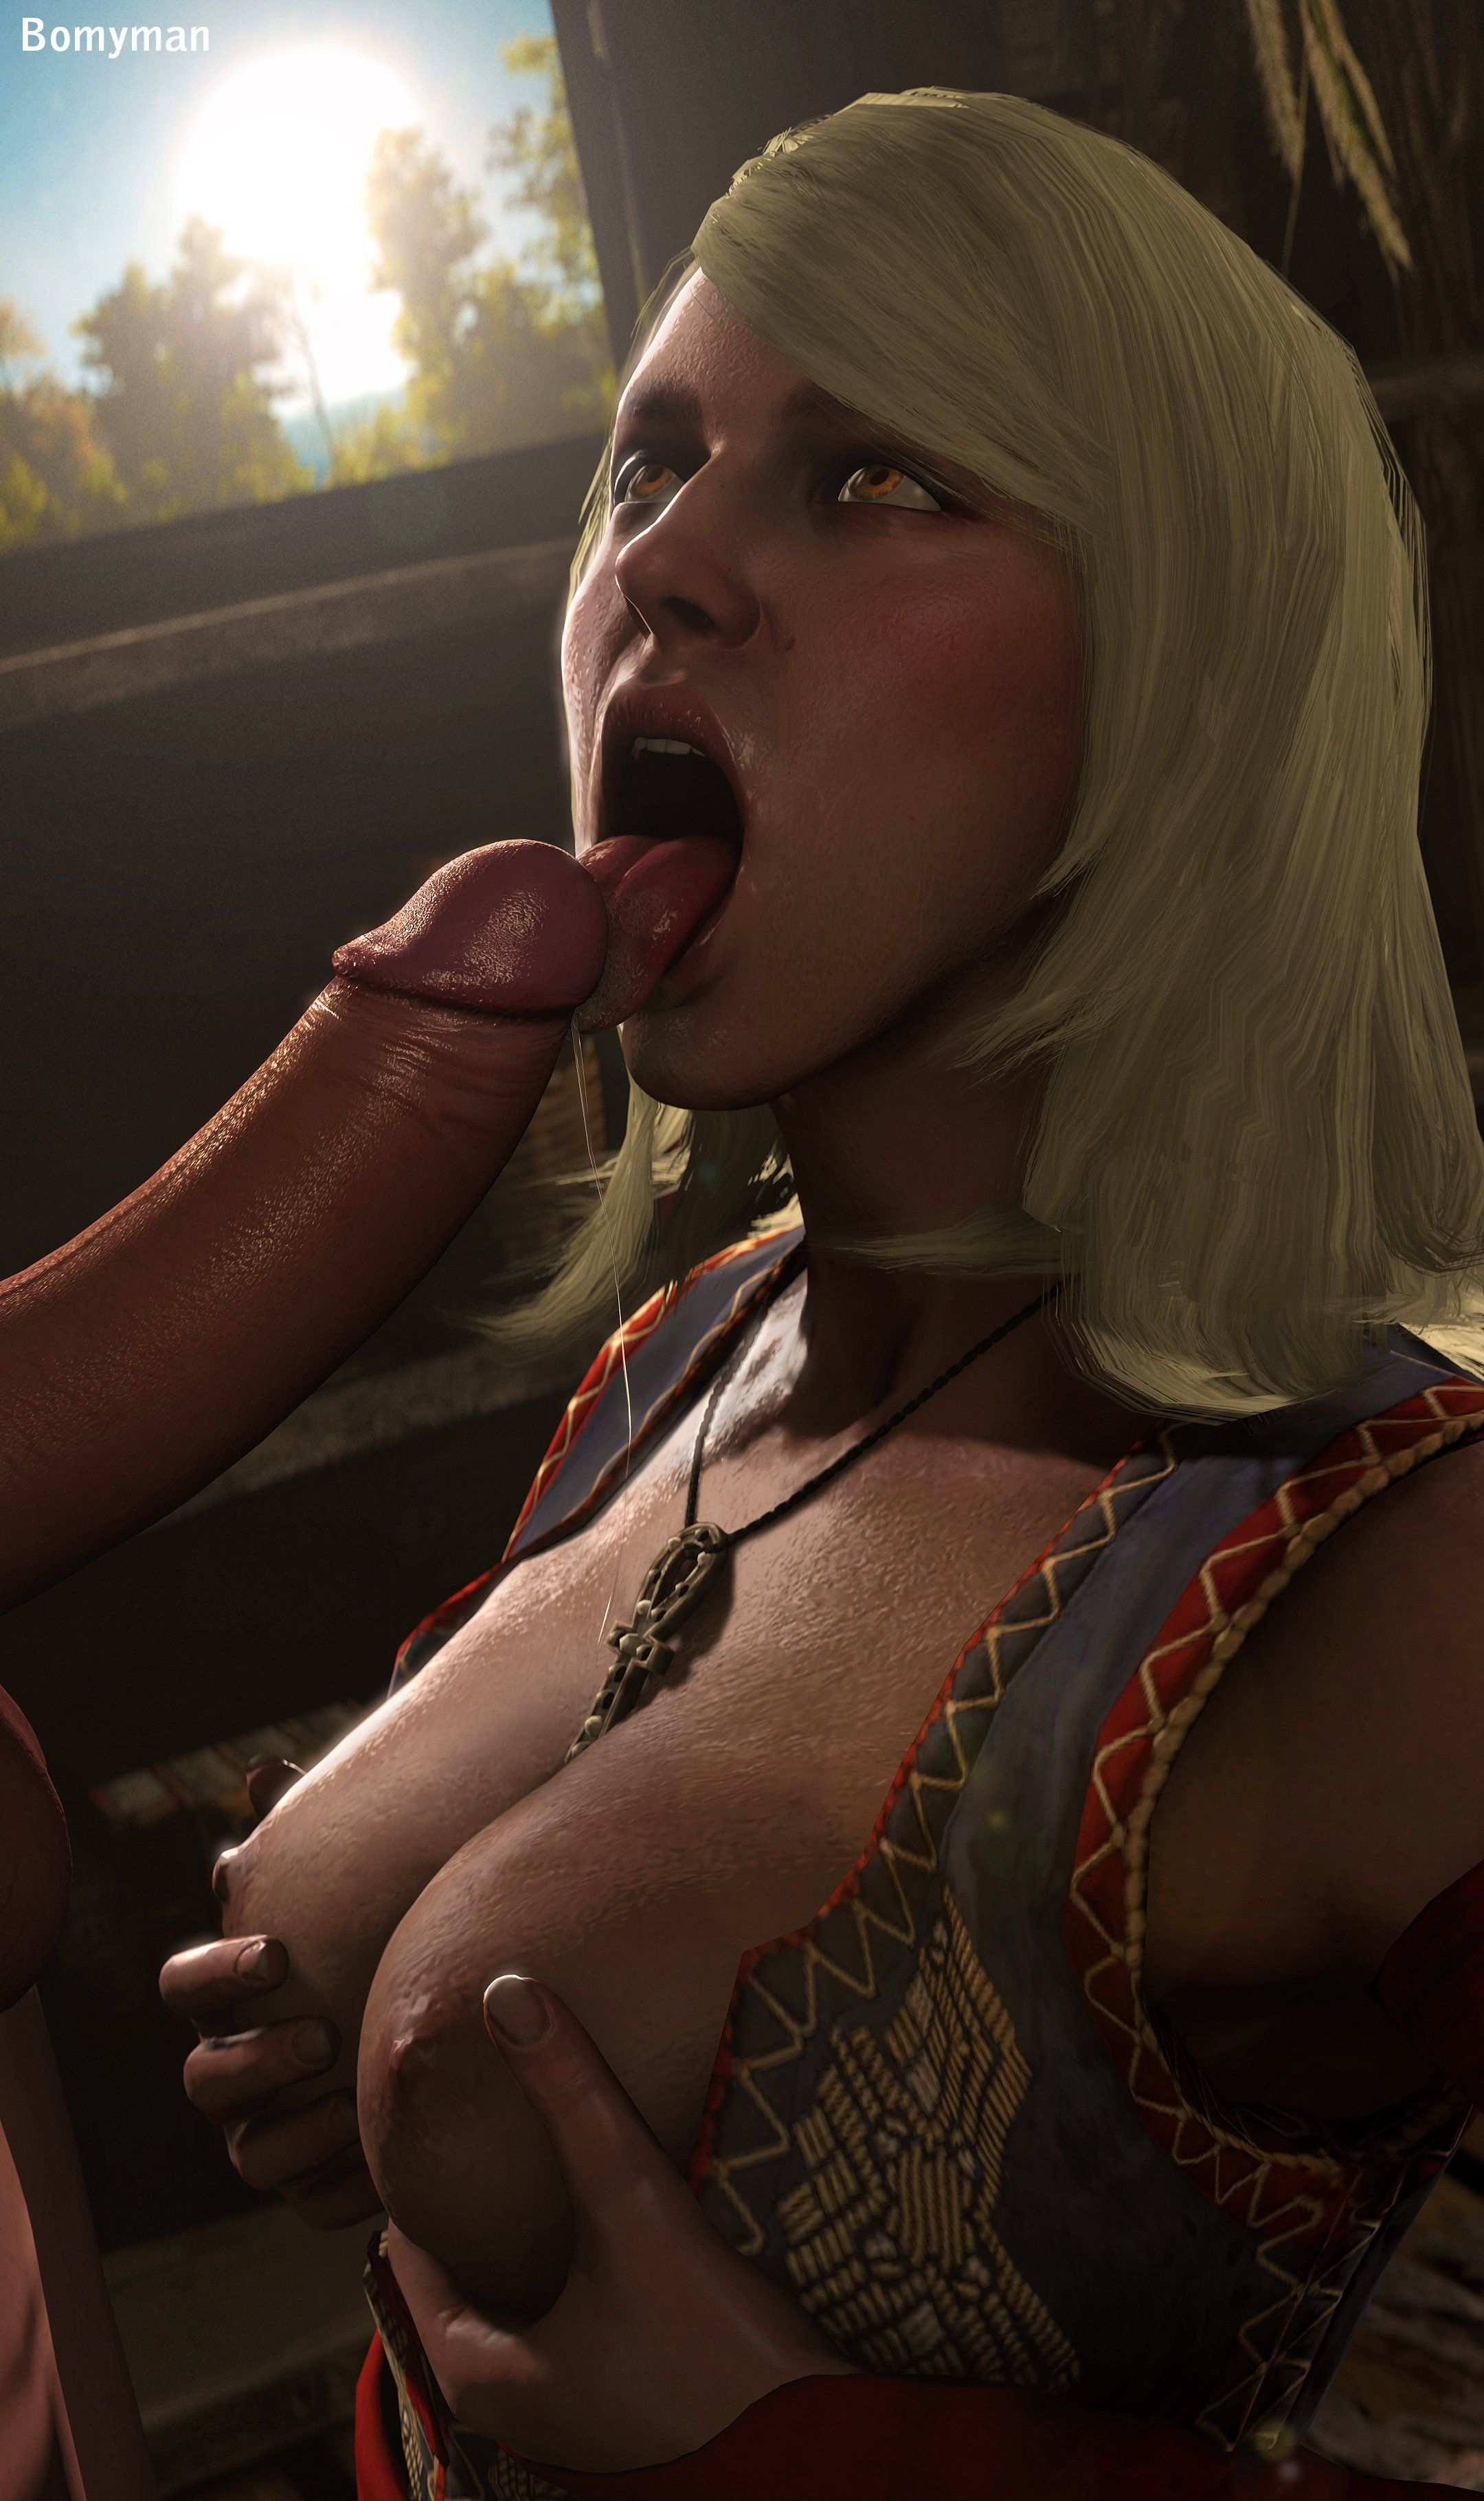 Amateur Porn Custome The Witcher keira metz the witcher trends adult free archive. comments: 3